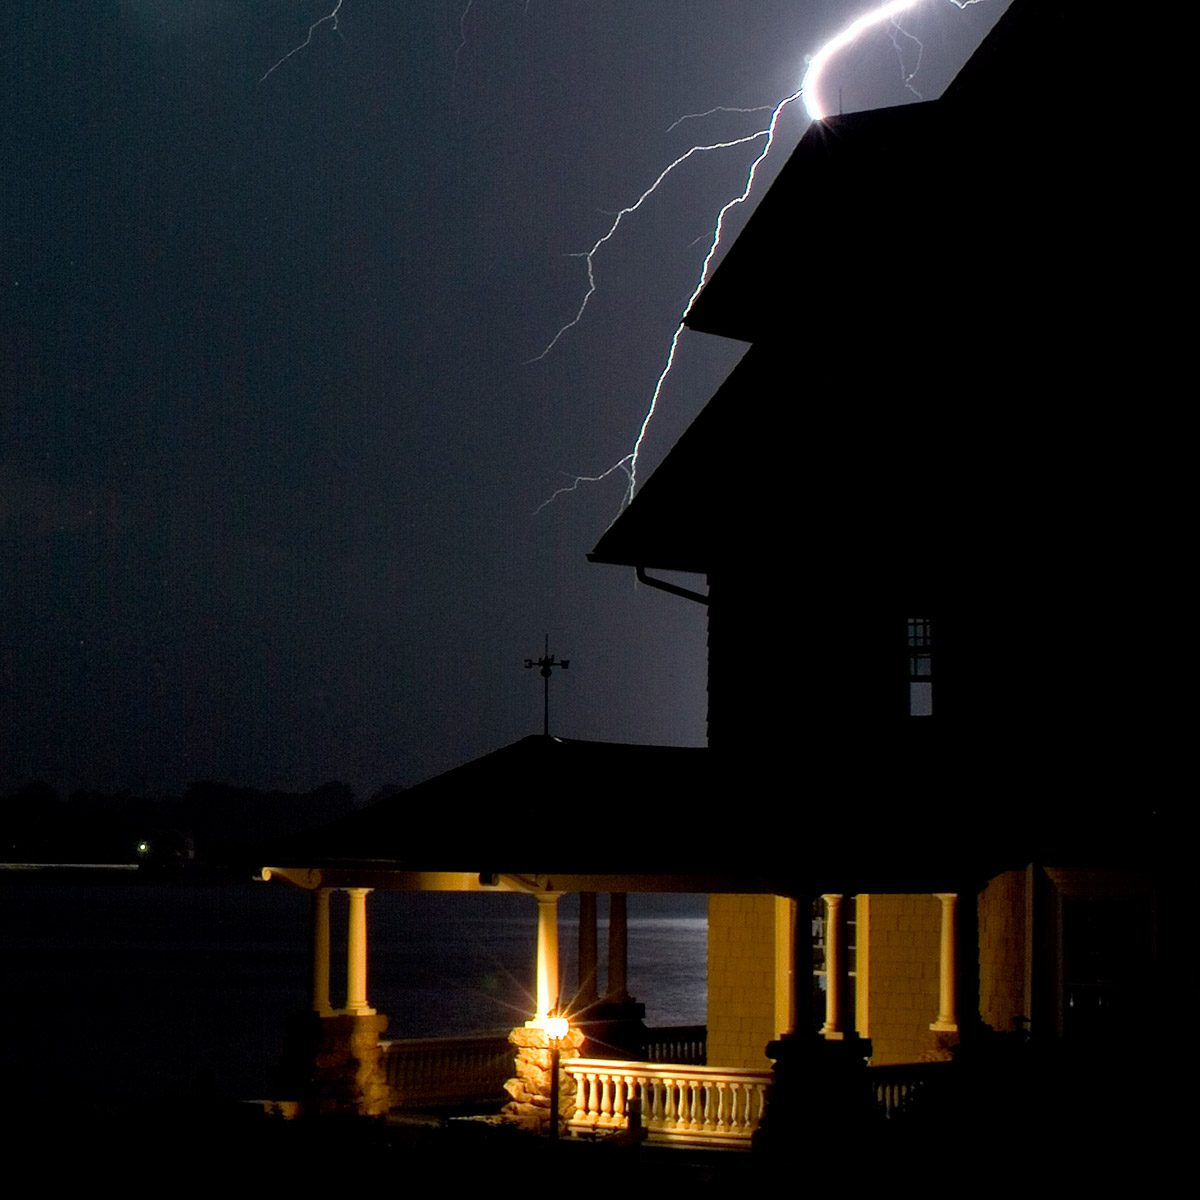 storm lightening house